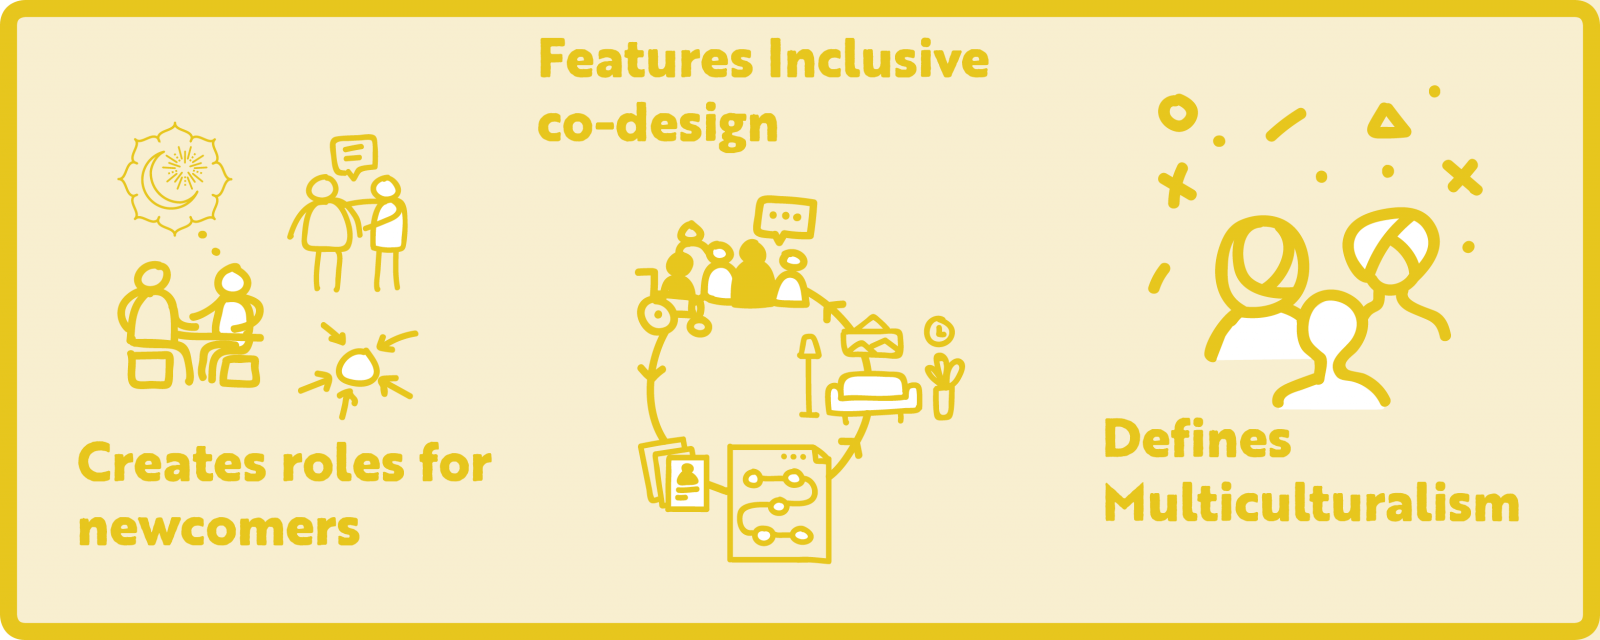 Creates Roles for newcomers – Features inclusive co-design – defines multiculturalism